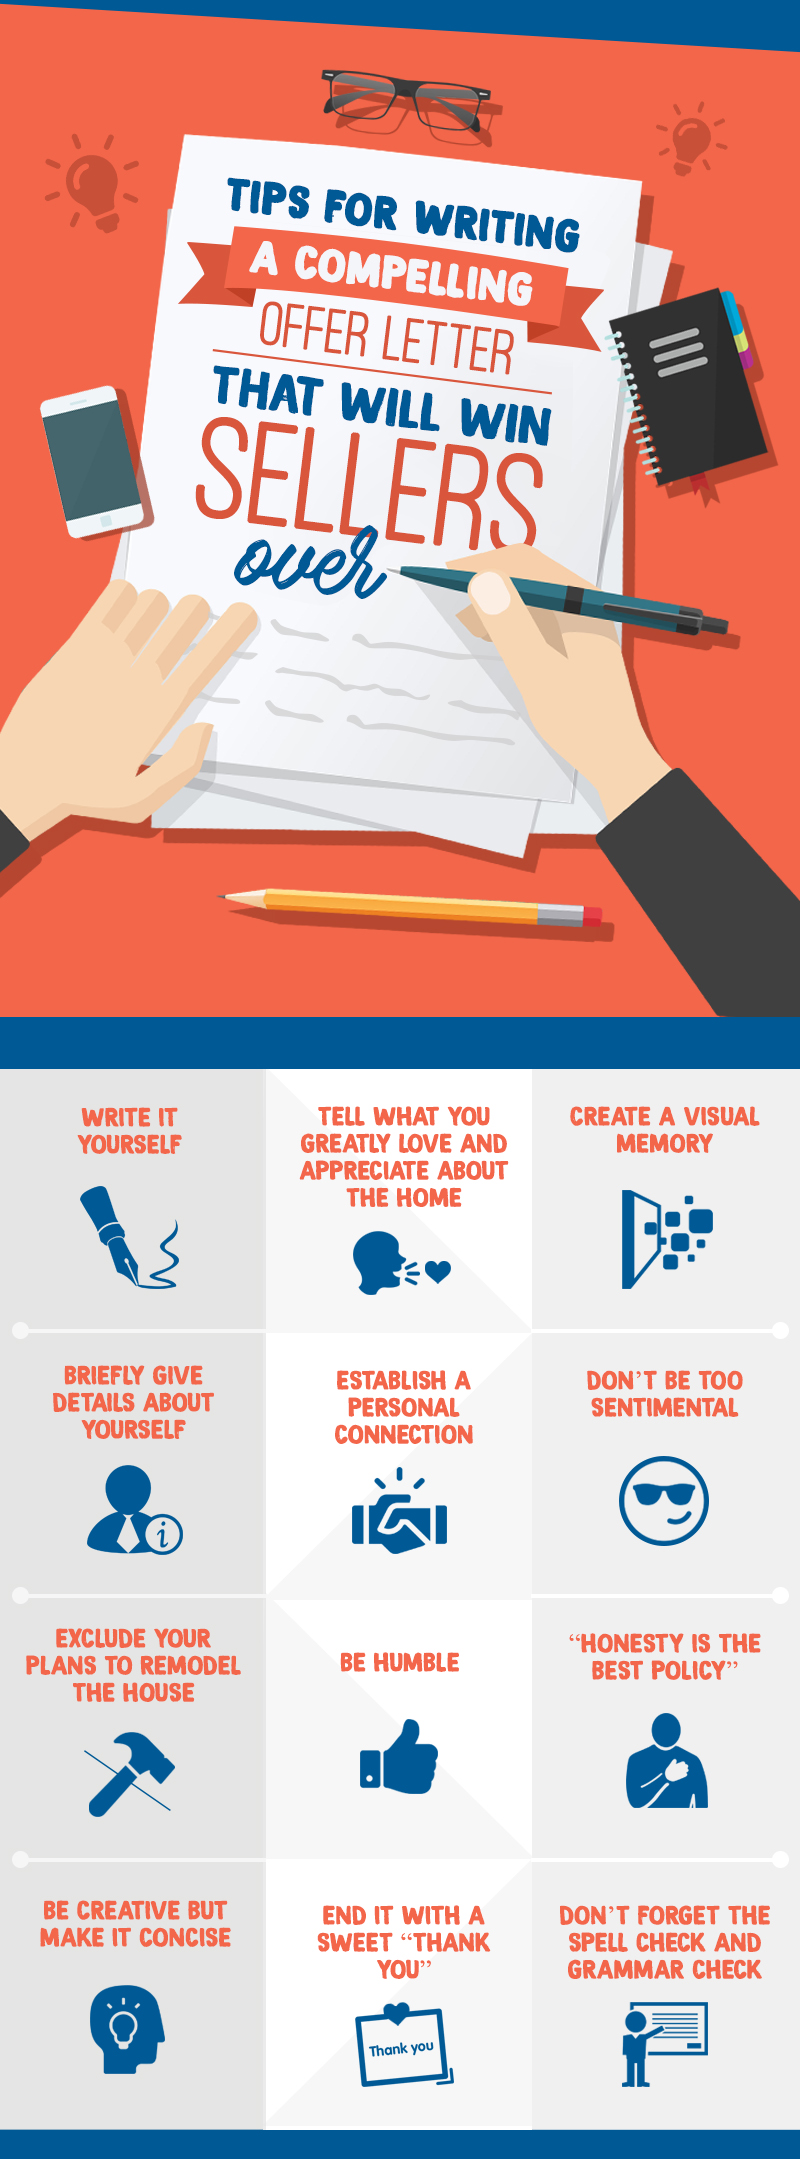 12 Tips For Writing A Compelling Offer Letter That Will Win Sellers Over